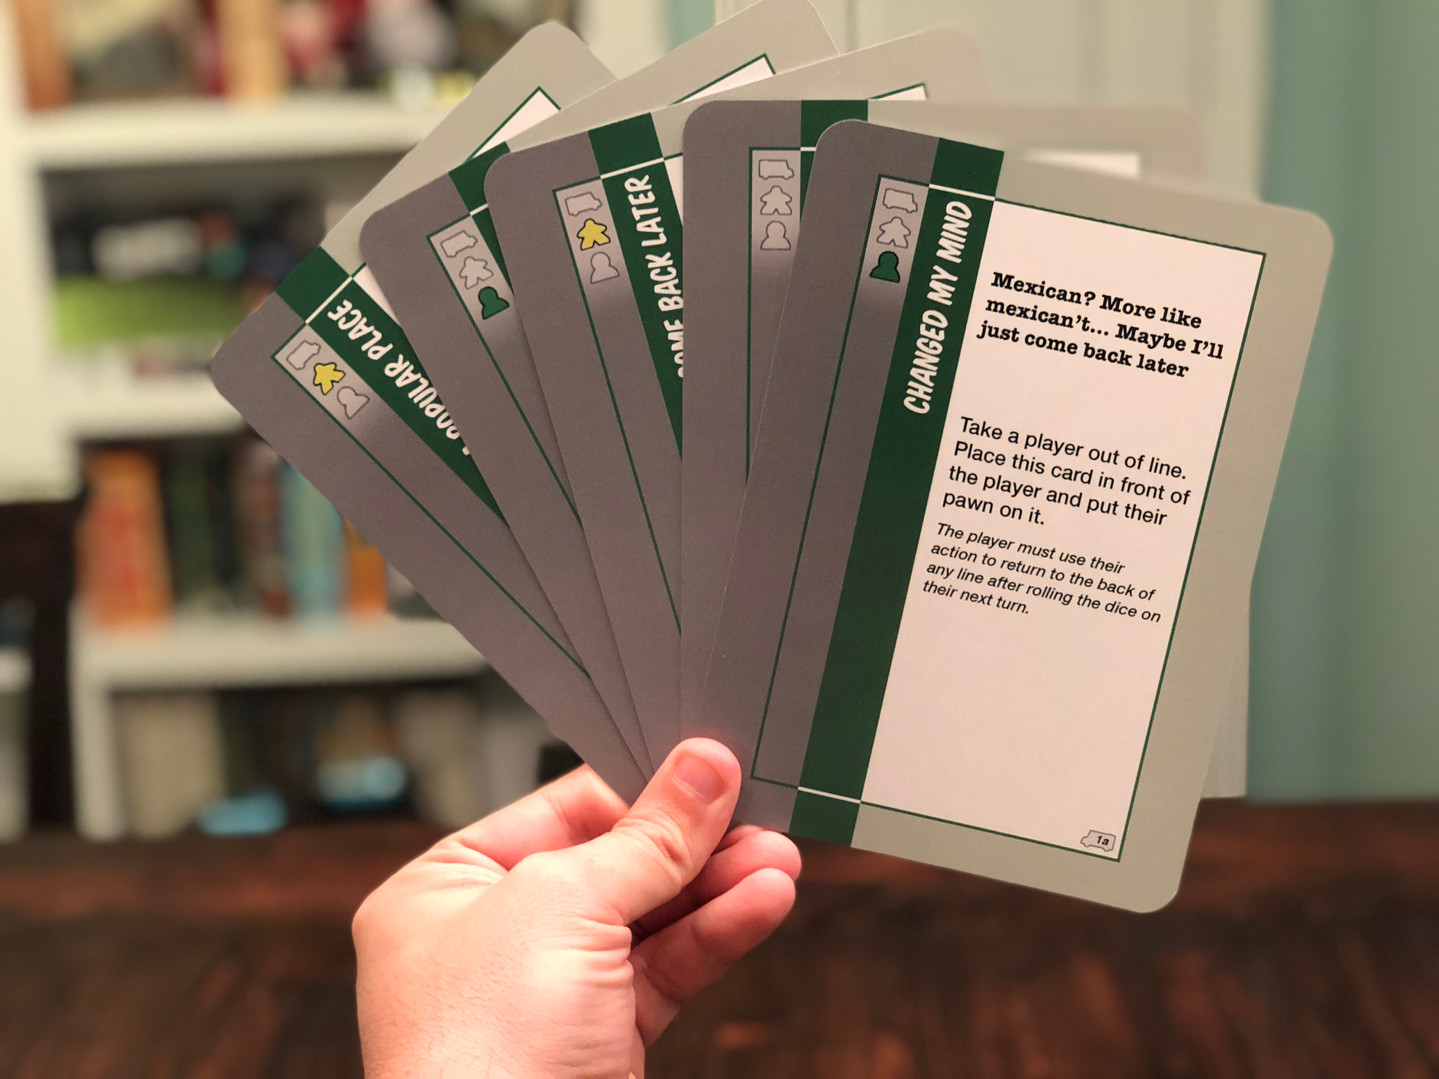 Giant-sized Cards